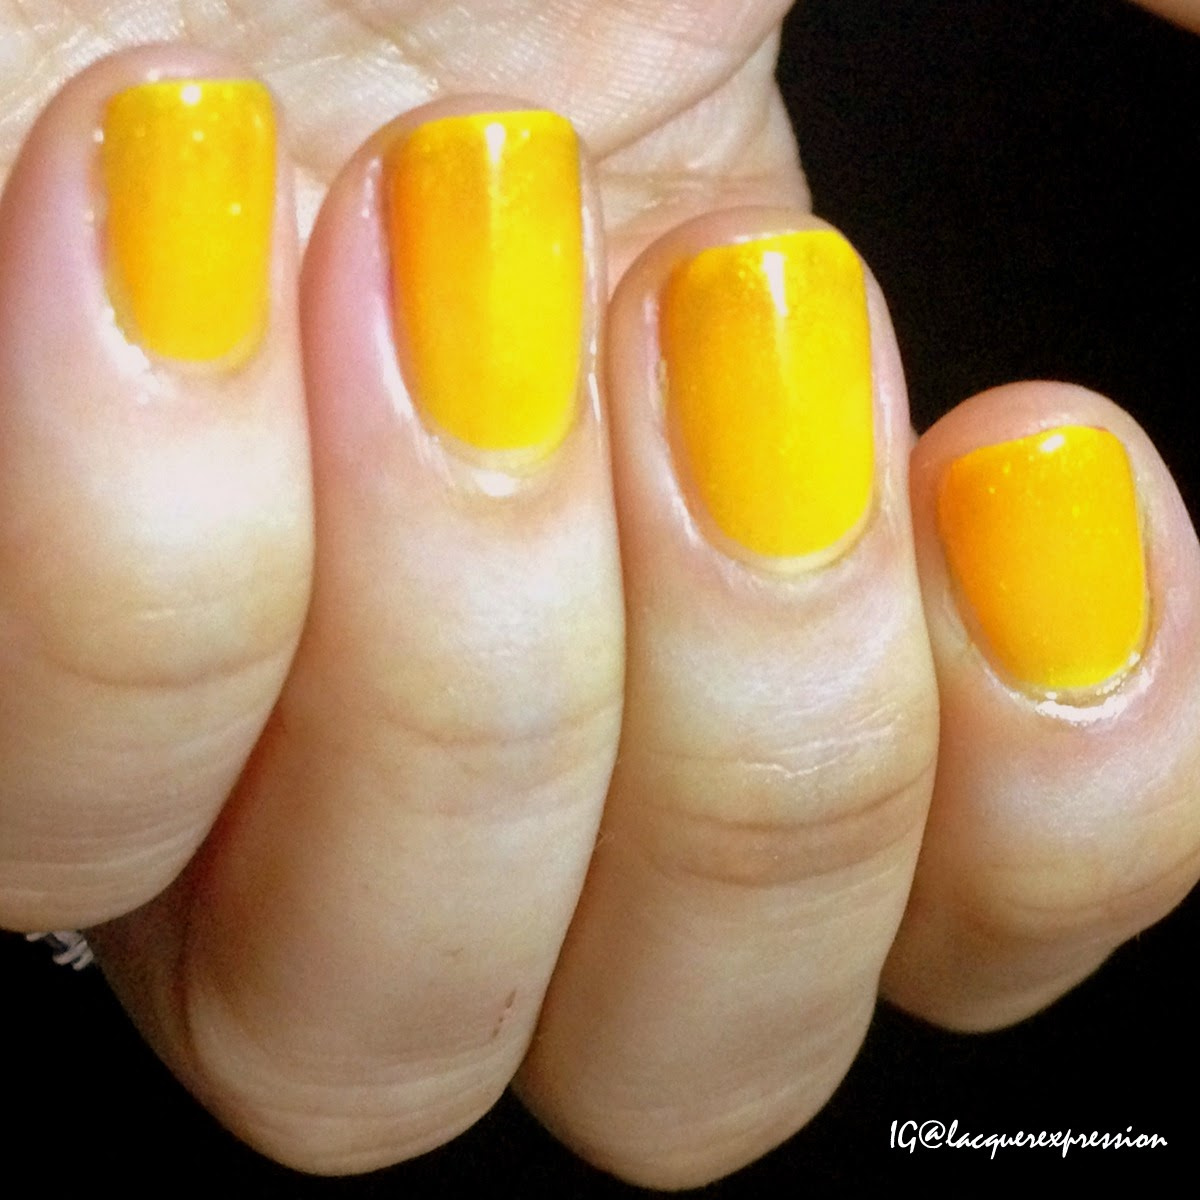 swatch and review of Markie nail polish by Shinespark